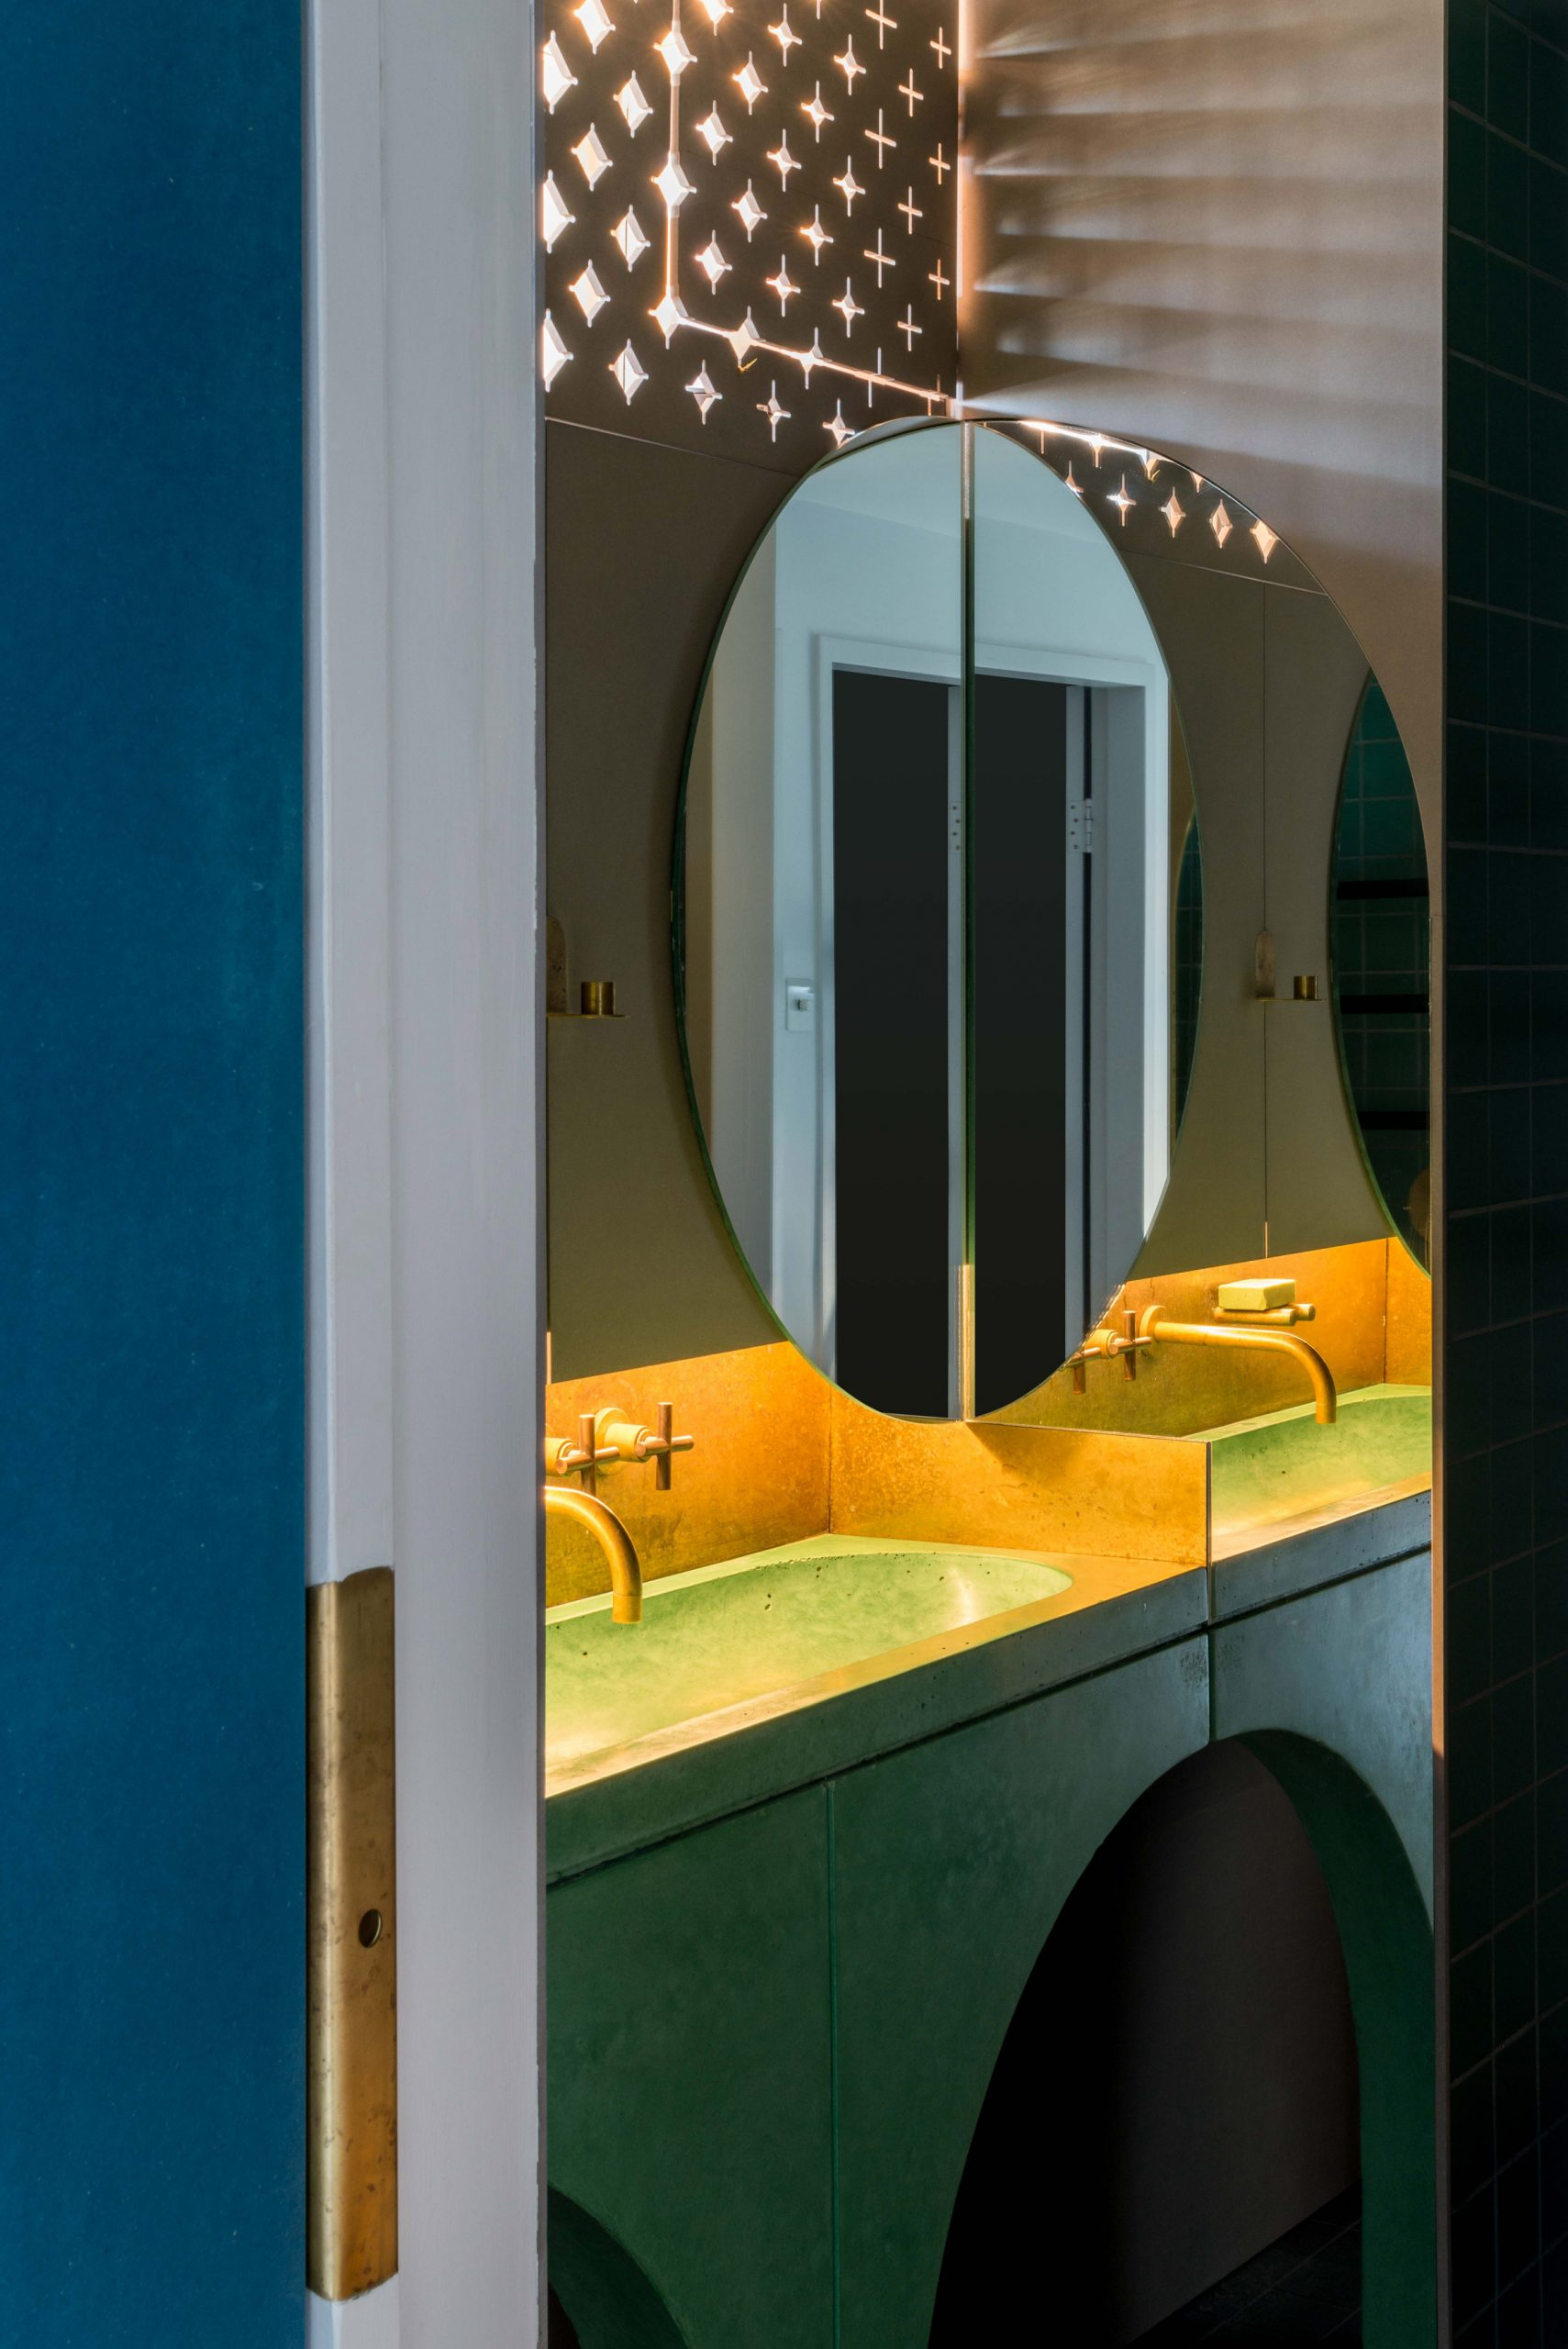 Bathroom of architect Ben Allen's London flat